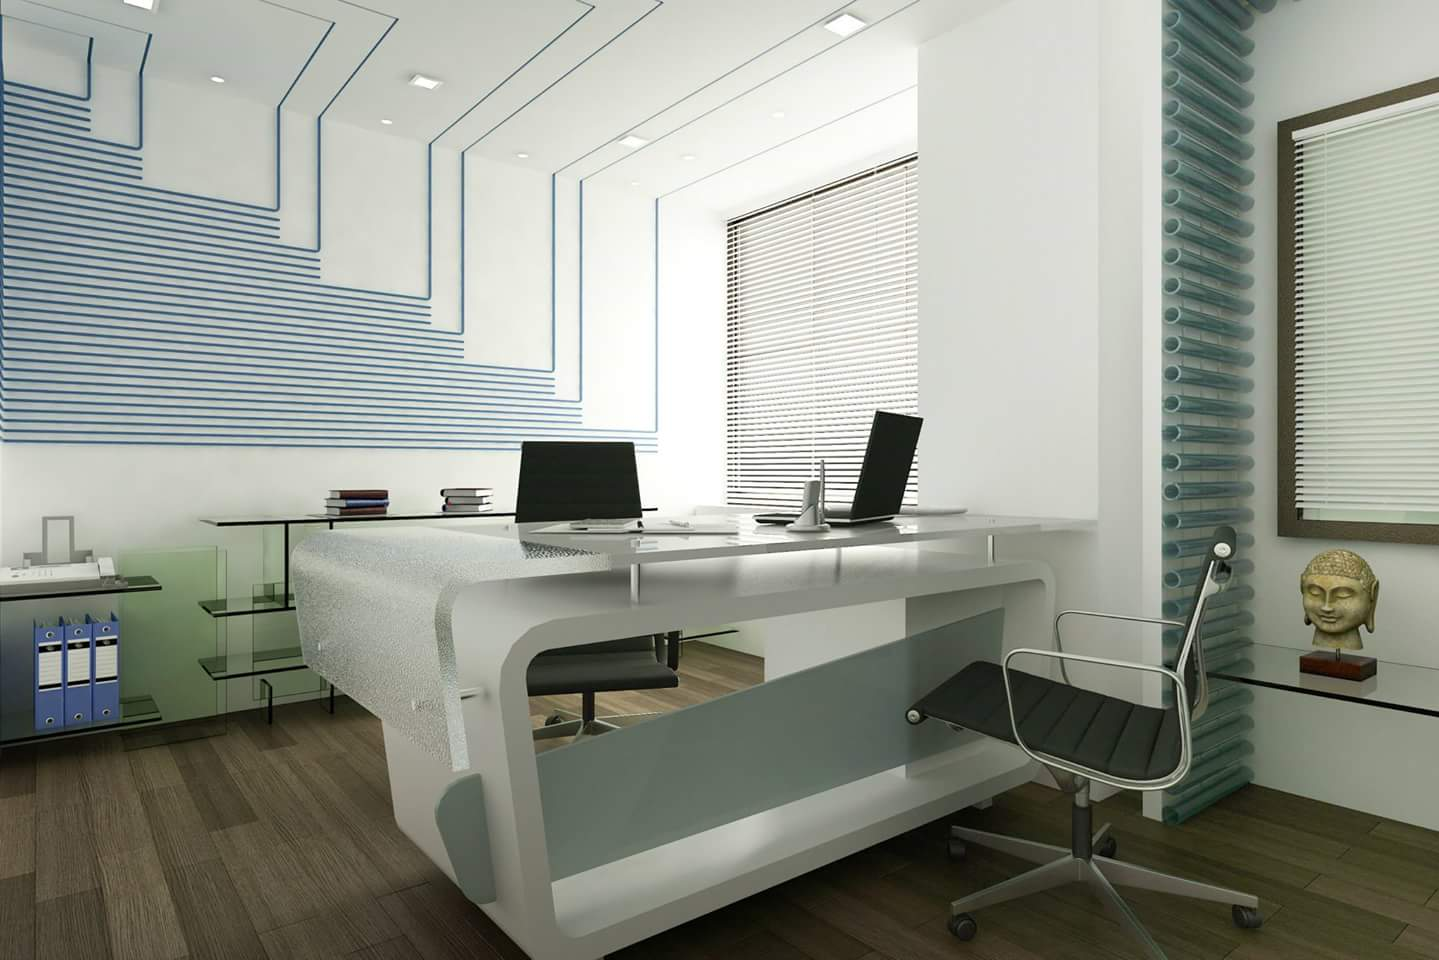 Interior Design Rendering Of Commercial Office